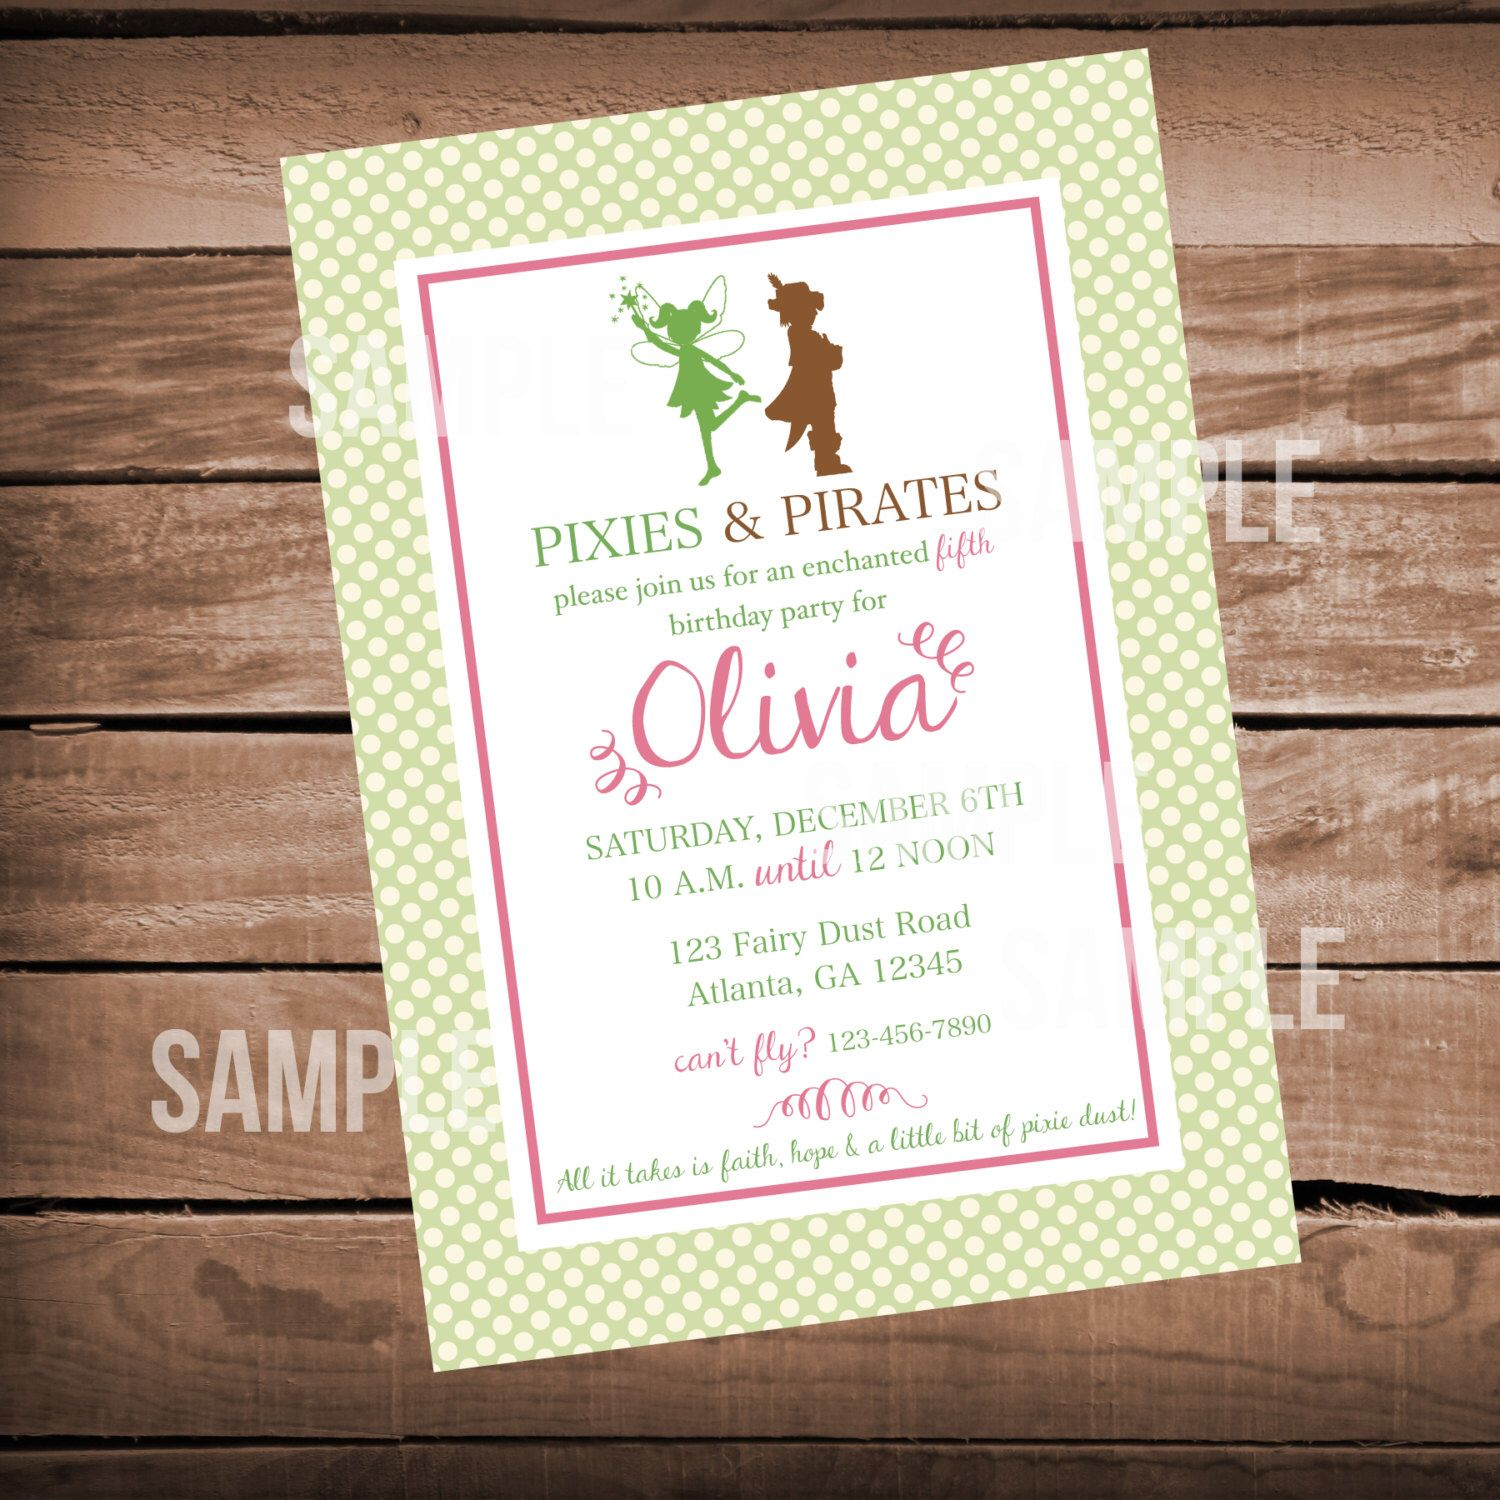 Pixie and Pirates Birthday Invitation - Tinkerbell | Tinkerbell ...